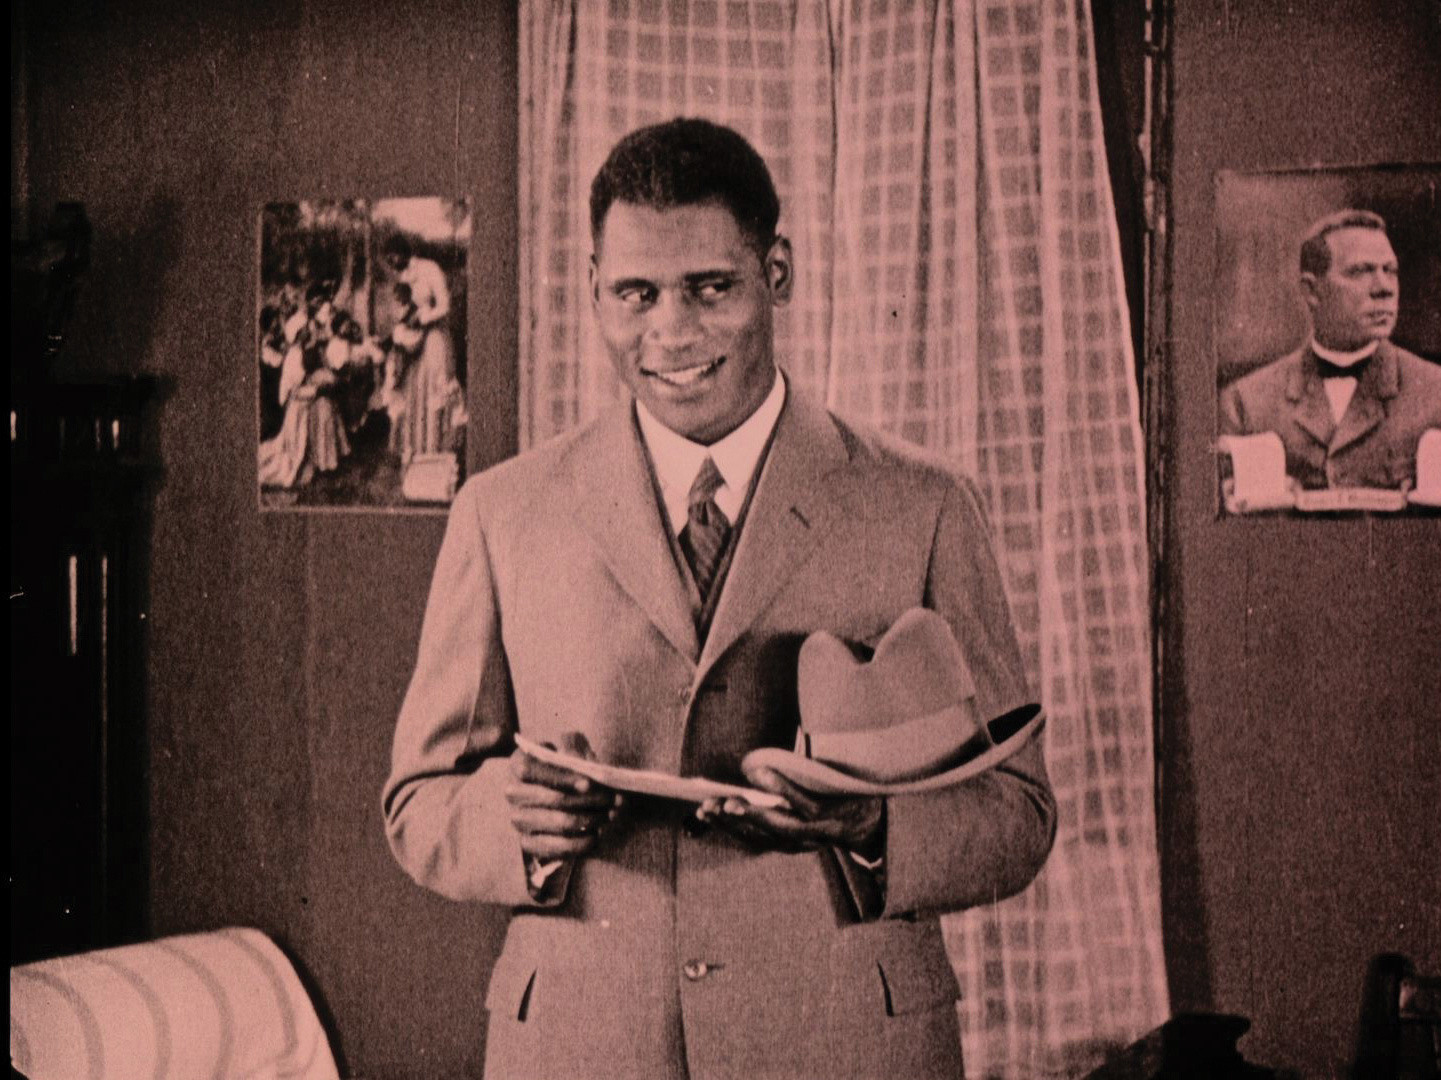 Body and Soul. 1925. USA. Directed by Oscar Micheaux. Courtesy Kino Lorber